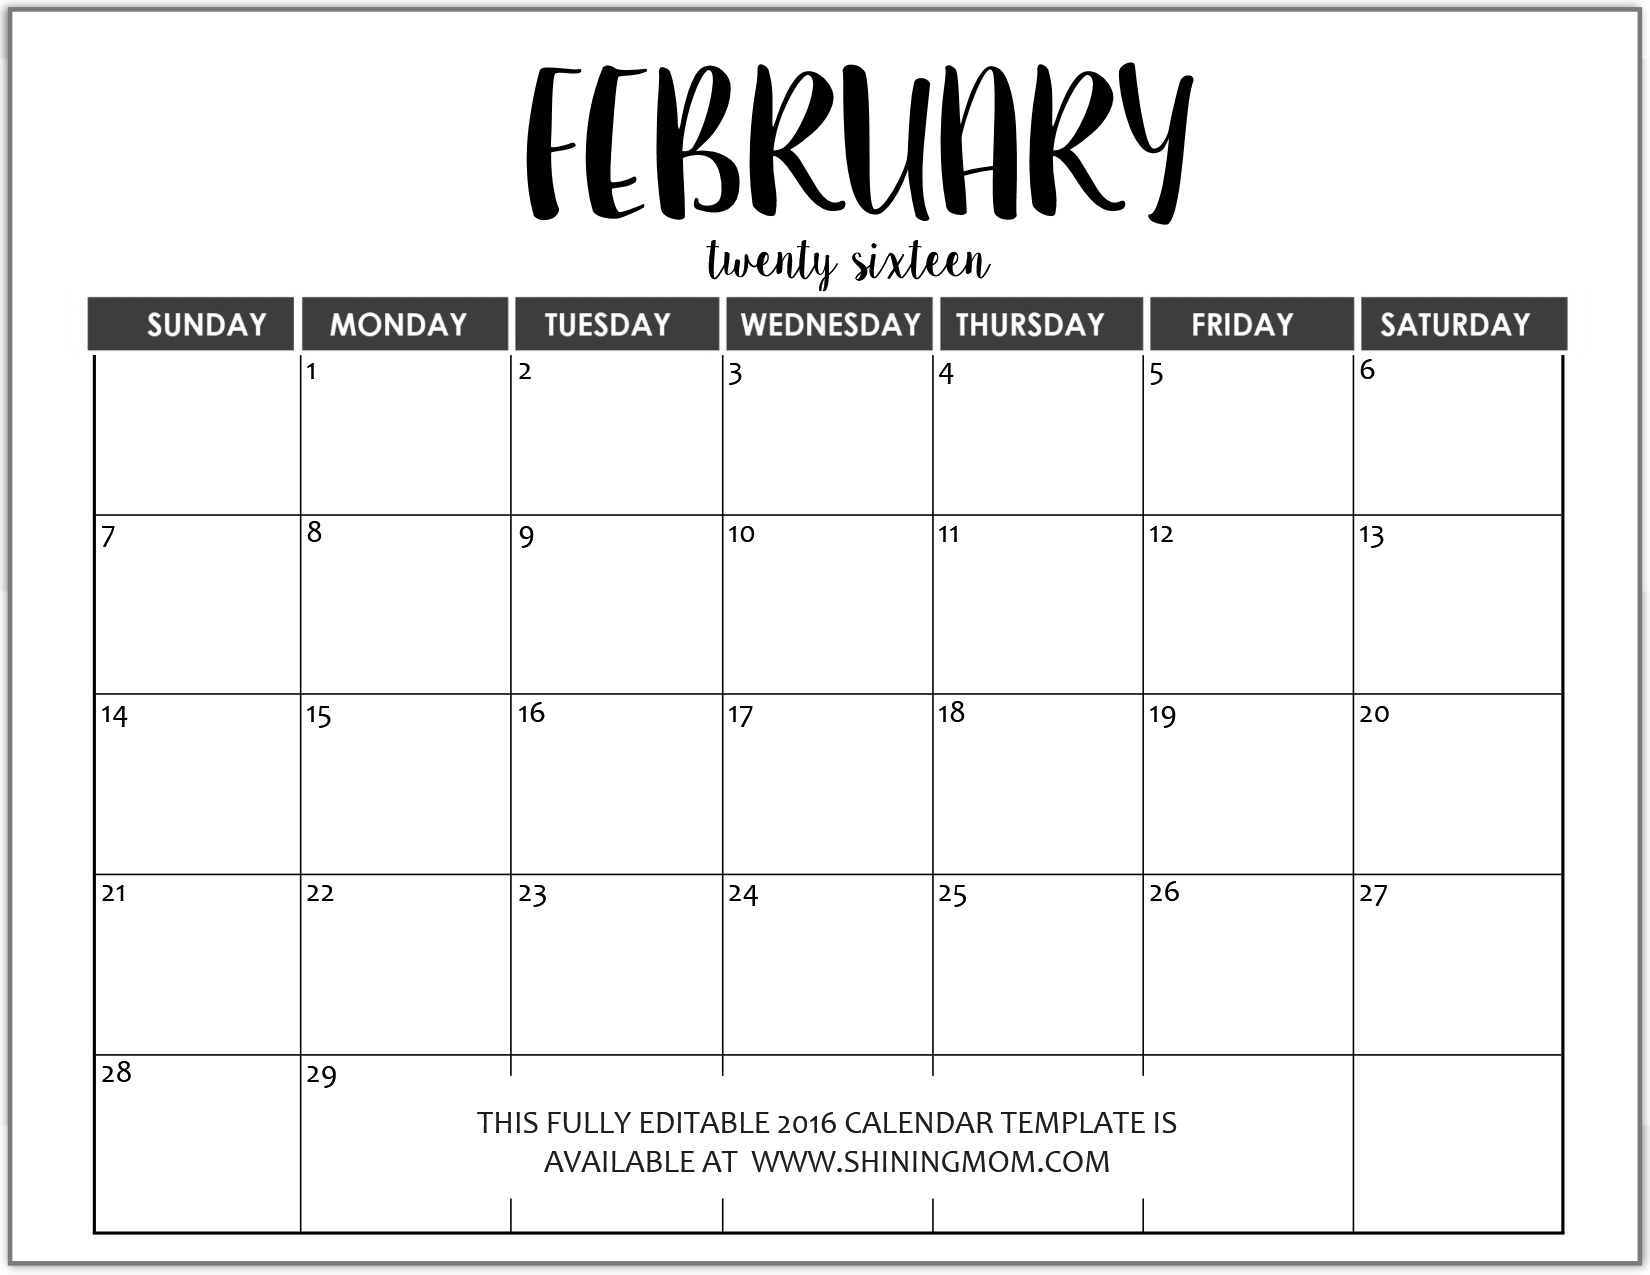 Just In: Fully Editable 2016 Calendar Templates In Ms Word Free Caolendar To Fill In Online